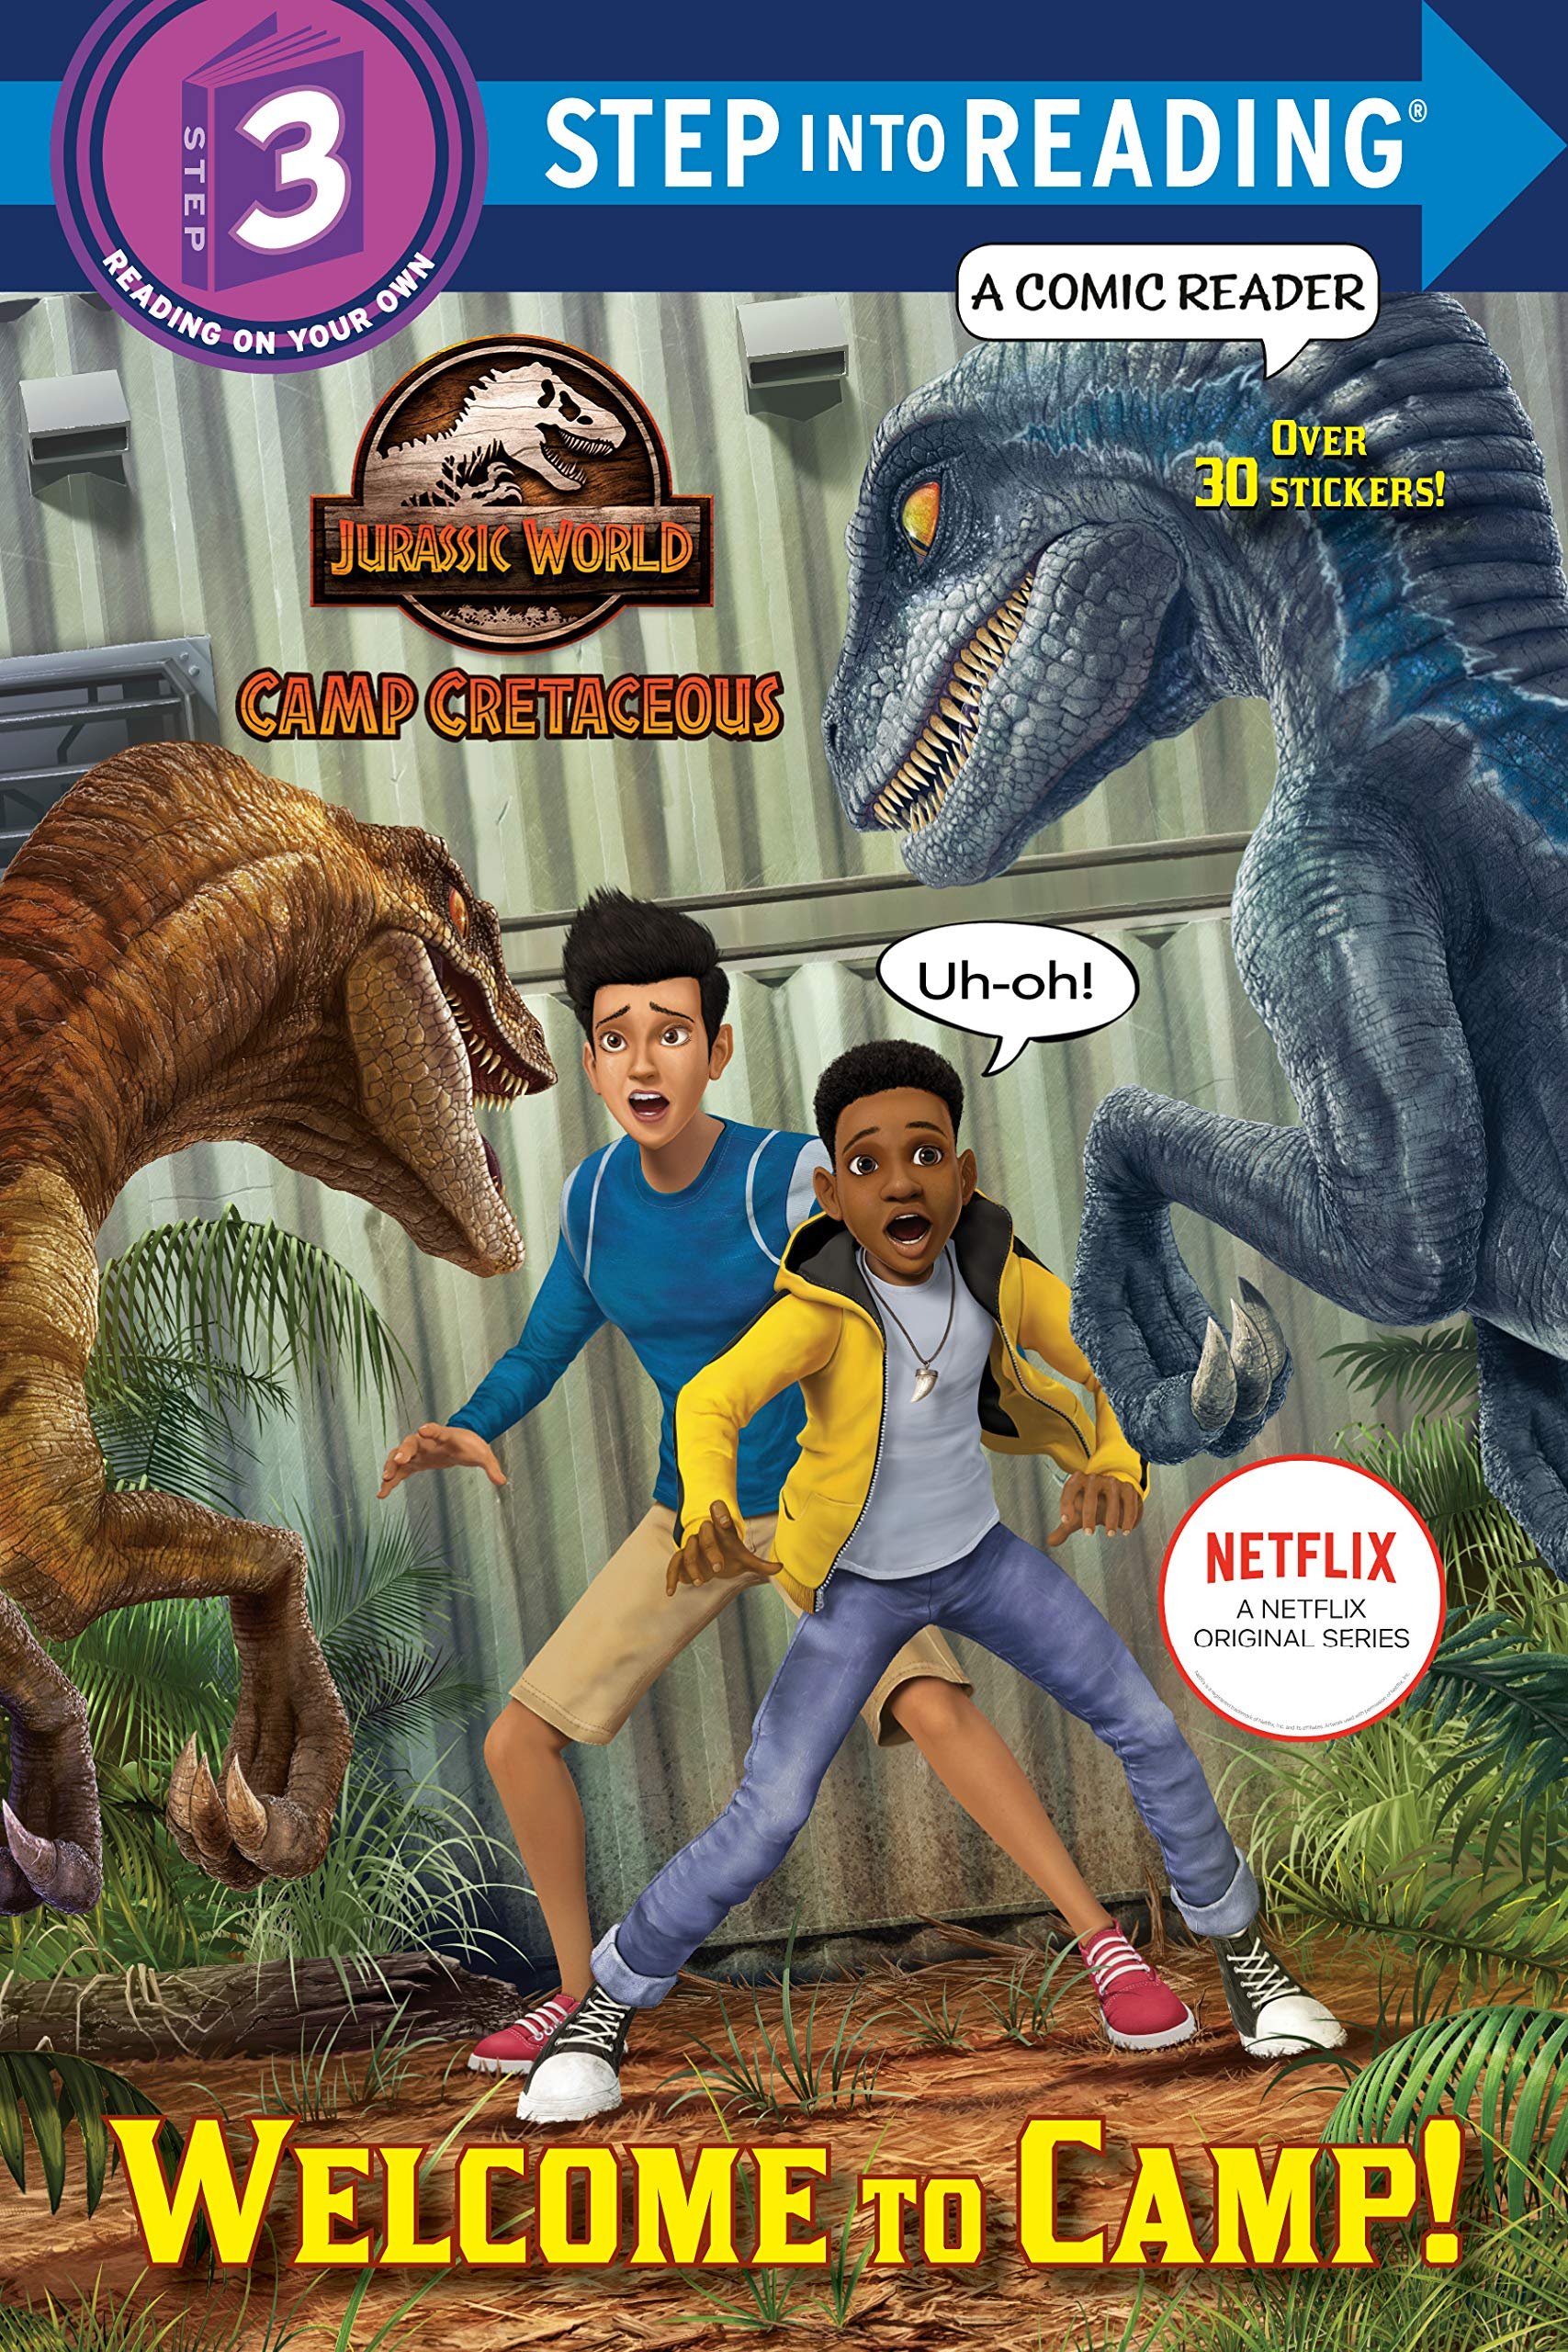 Amazon Com Welcome To Camp Jurassic World Camp Cretaceous Step Into Reading 9780593303351 Behling Steve Spaziante Patrick Books Зесун кан, майкл маллен, эрик элрод и др. amazon com welcome to camp jurassic